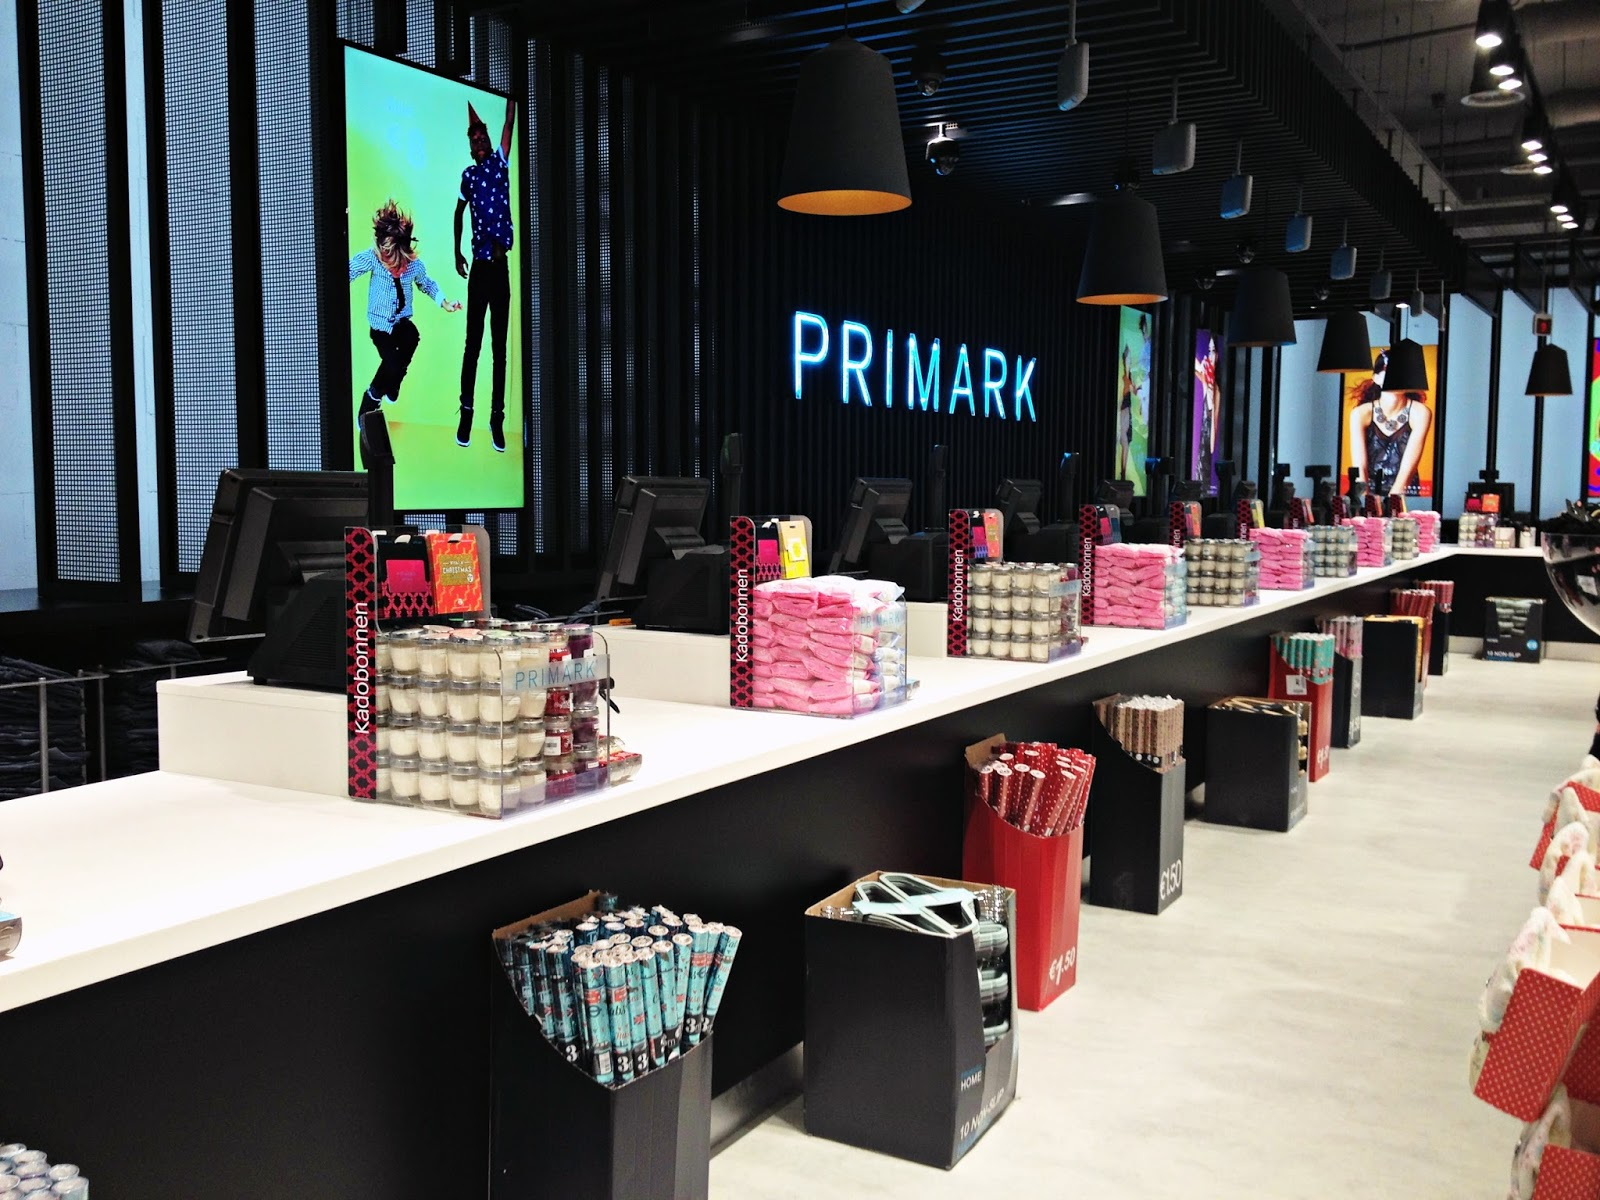 Primark Den Haag Press Opening 2014